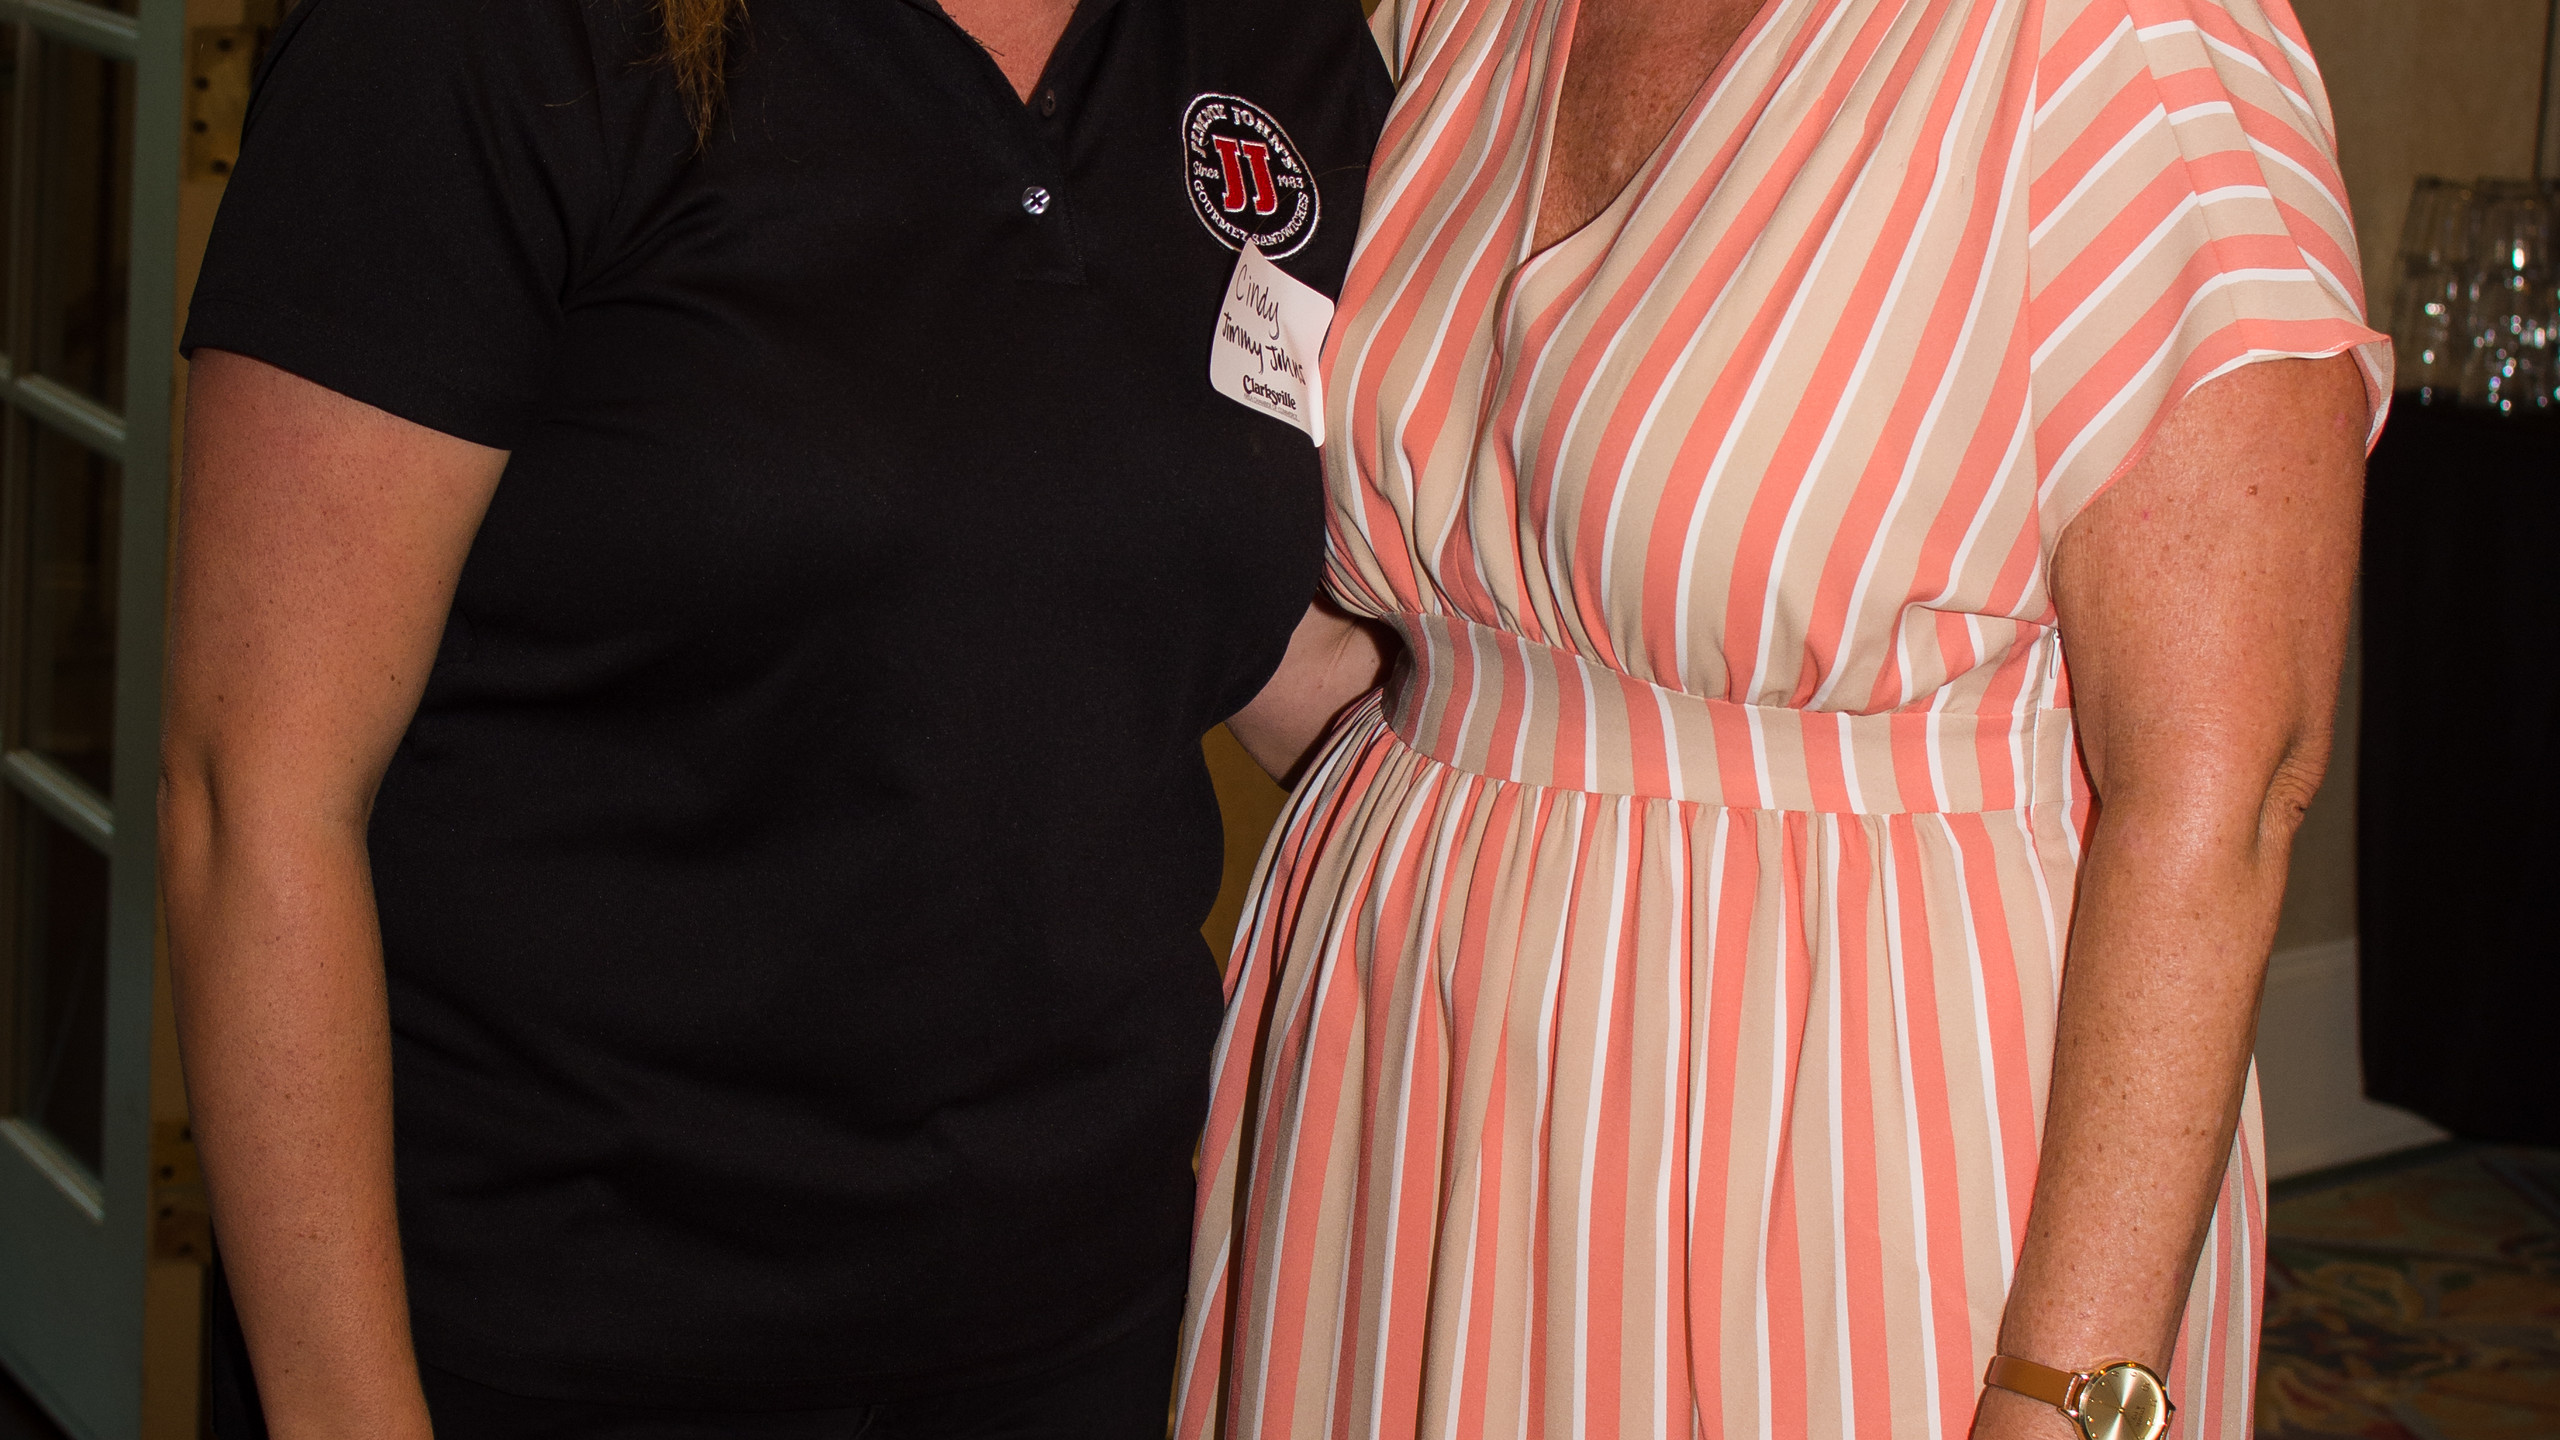 Cindy Parcells and Melinda Shepard